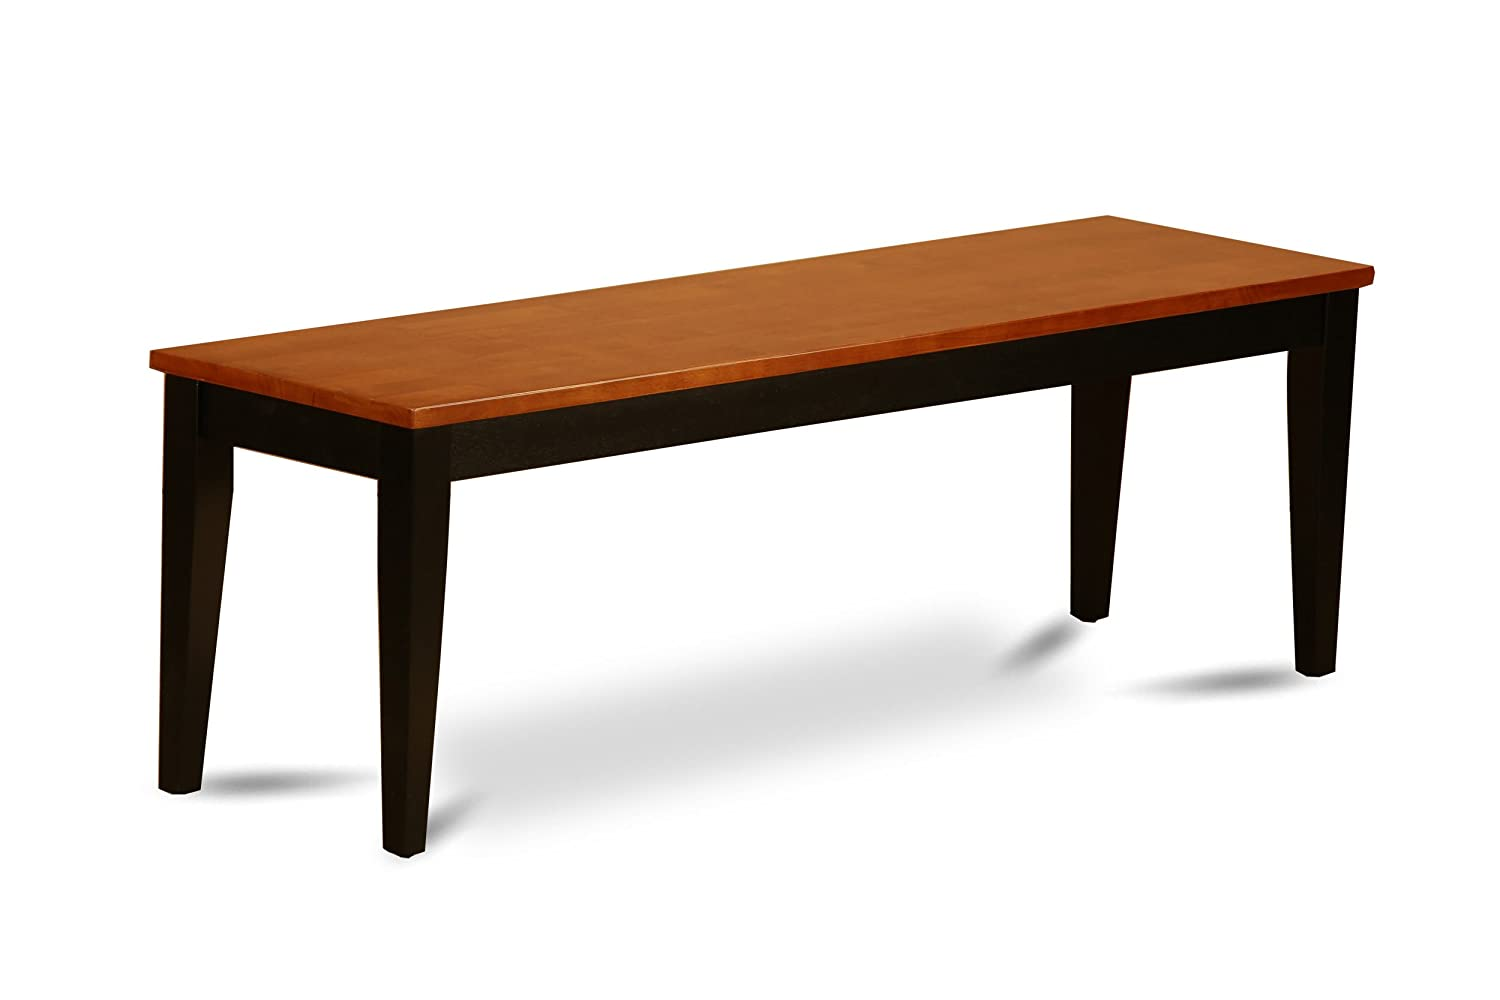 East West Furniture Dining Bench with Wood Seat, Black/Cherry Finish